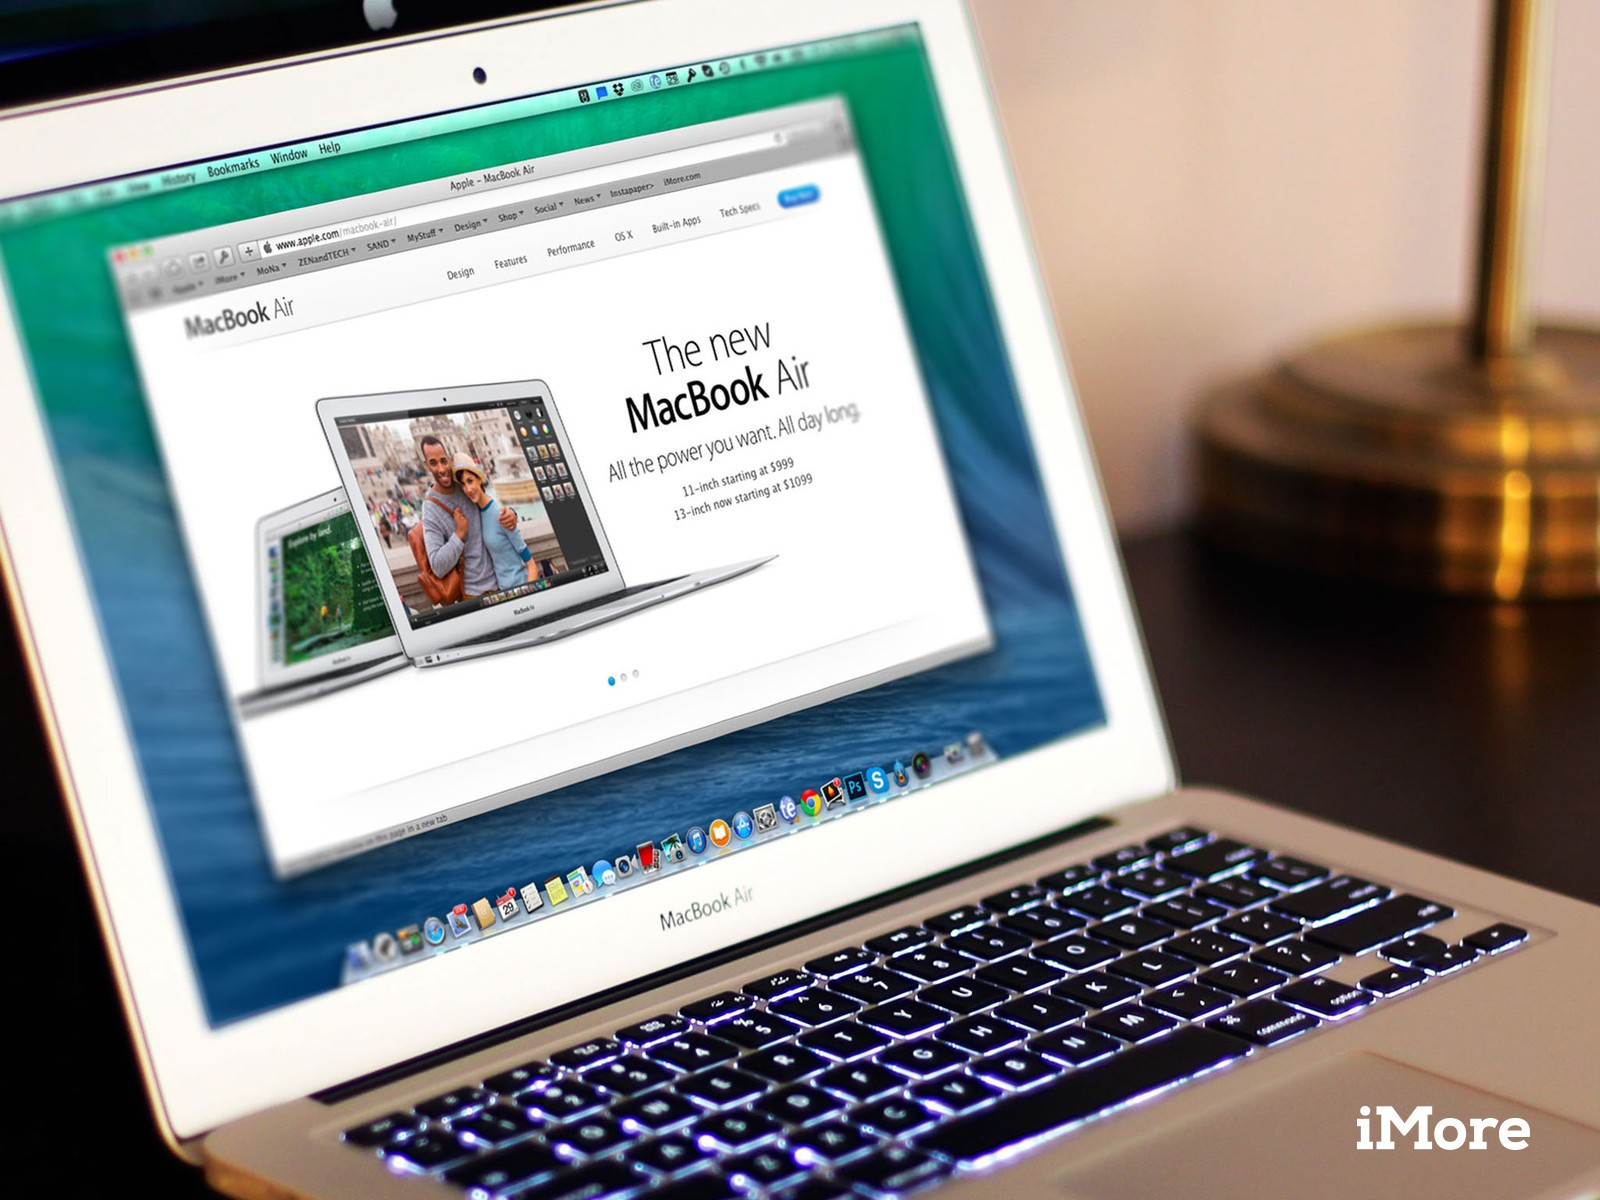 Is a new MacBook Air just around the corner?